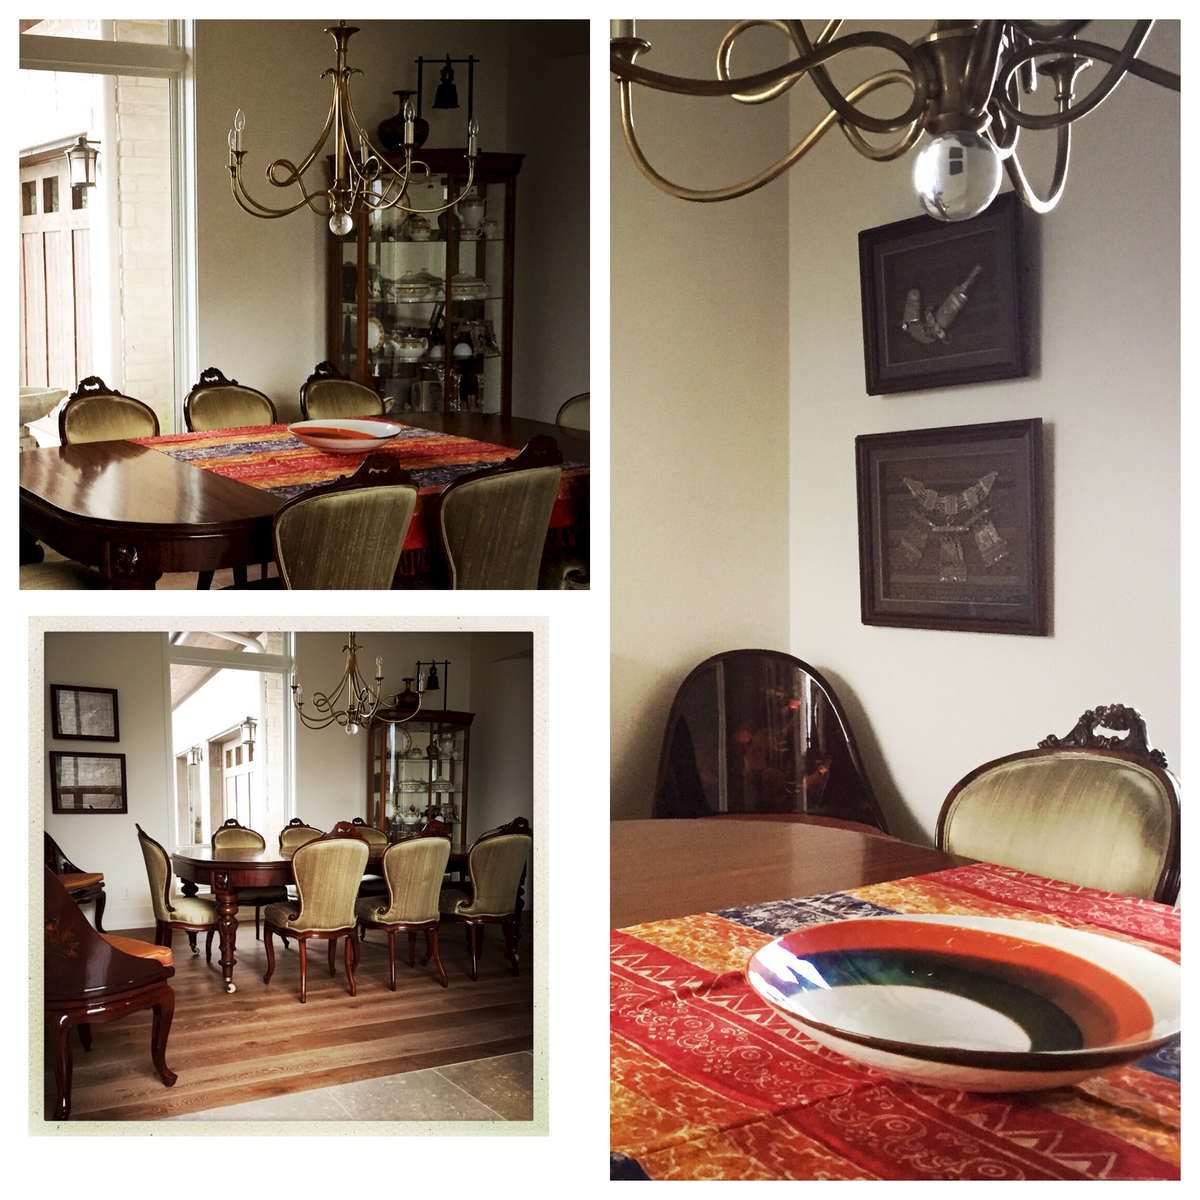 The Balinese sari flavours the rich wood tones collected in this dining room.